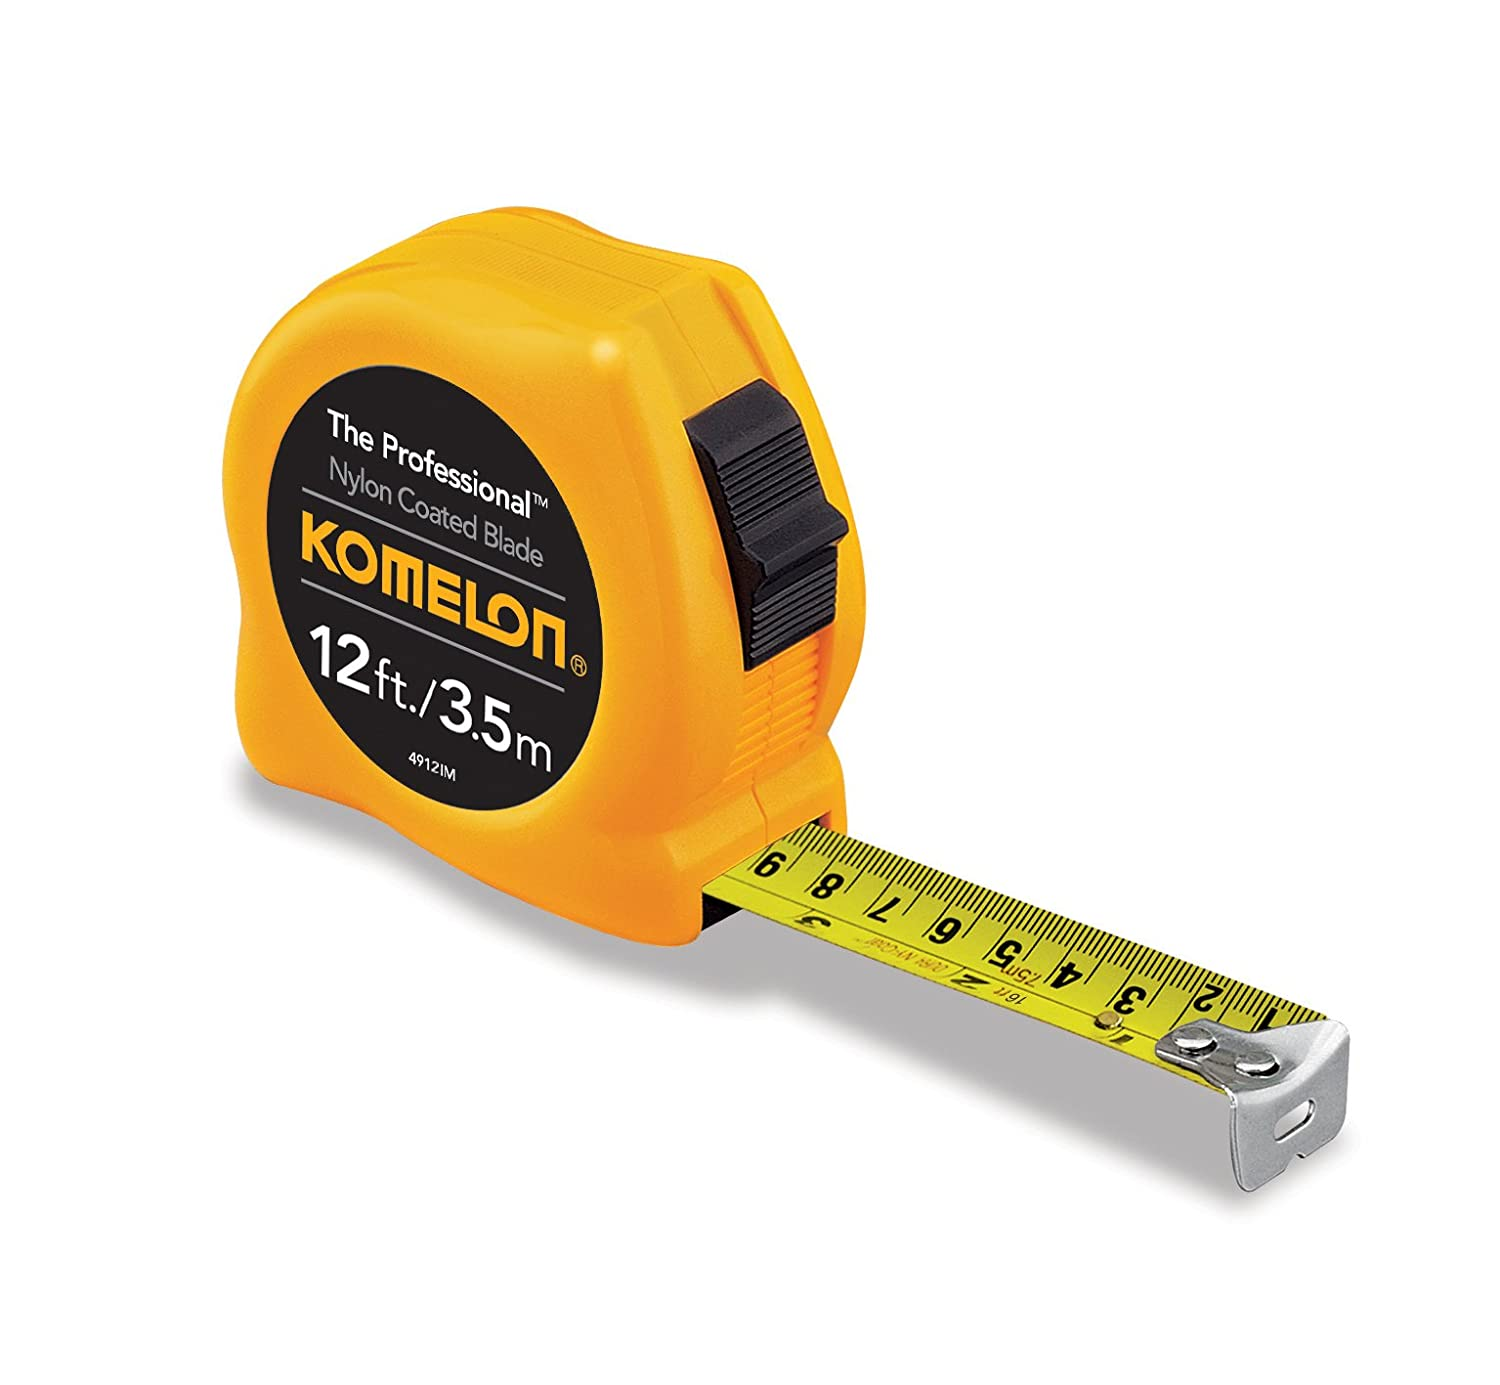 Komelon Max 82% OFF 4912IM The Professional 12-Foot Scale Metric 1 year warranty Inch Power